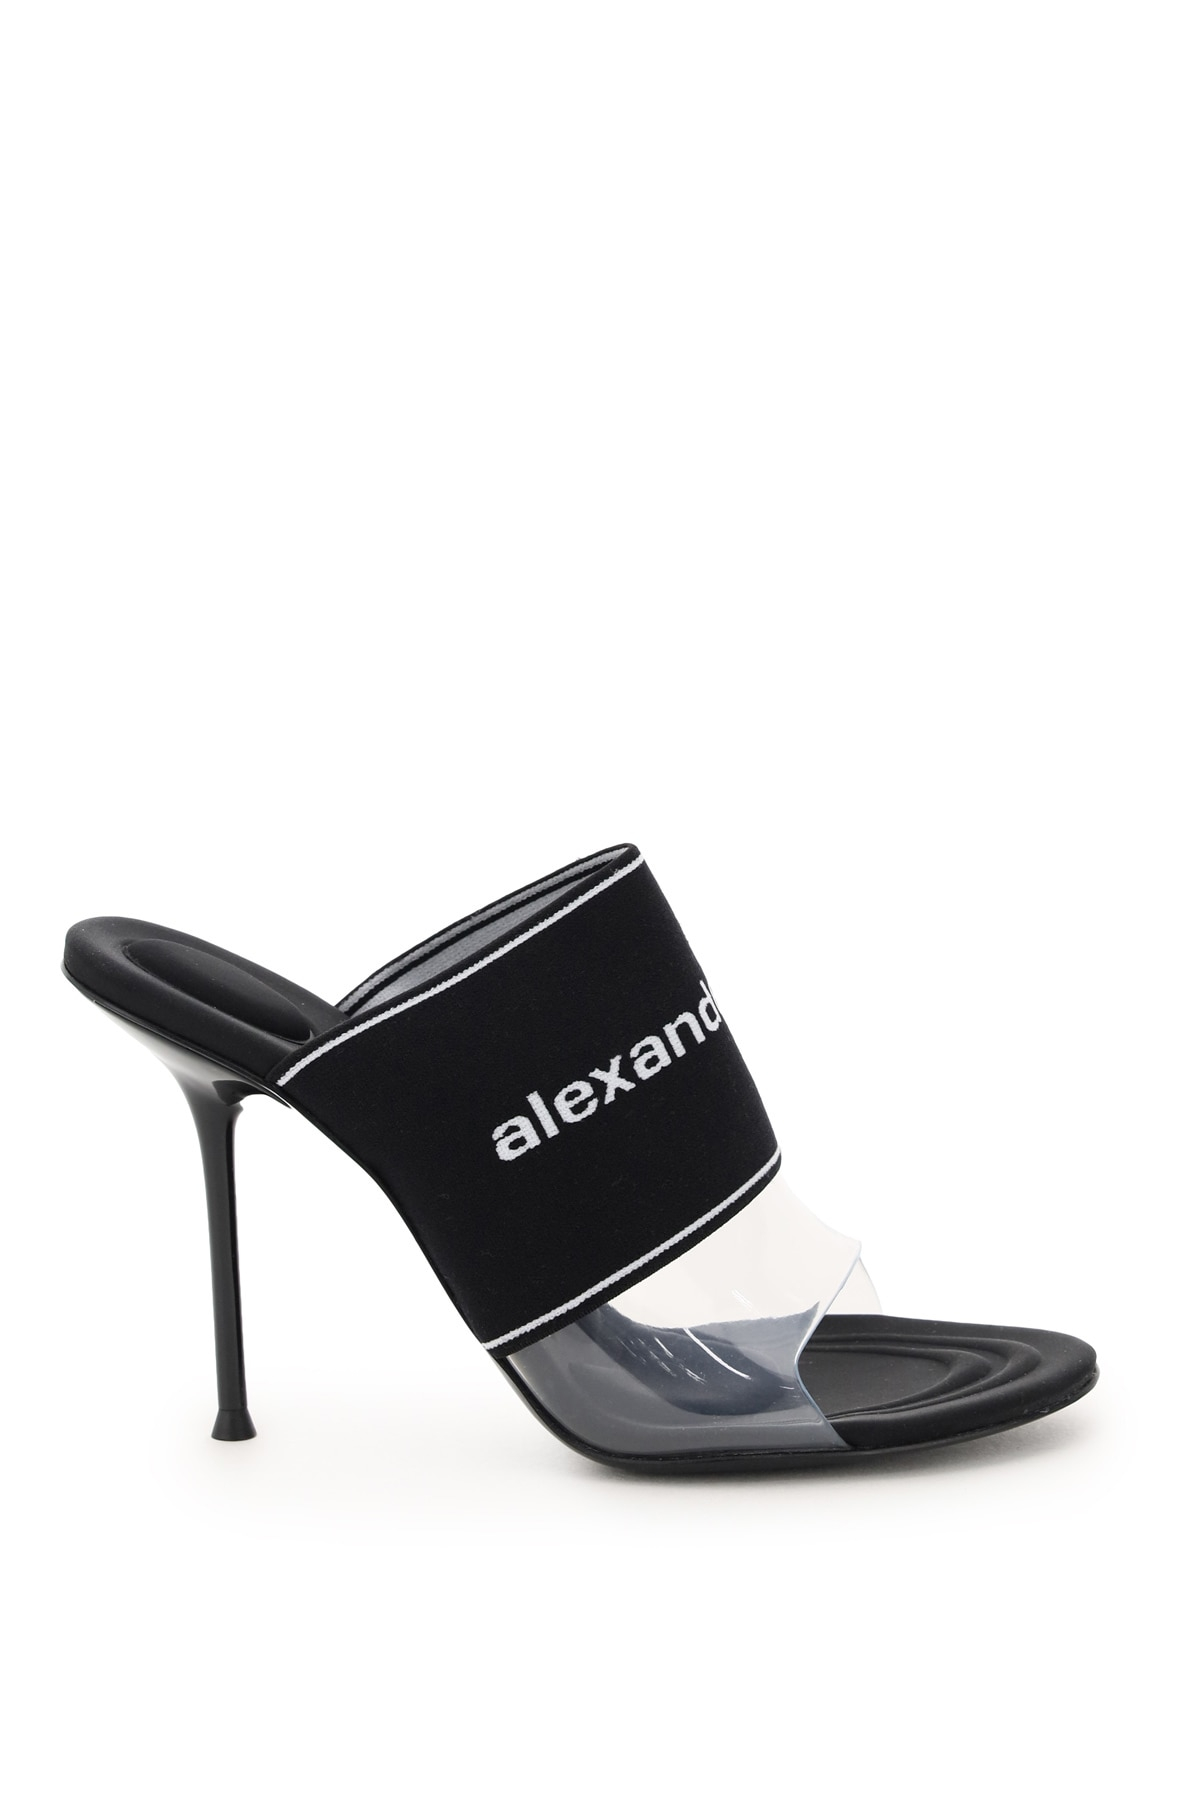 Alexander Wang Sandals SIENNA MULES WITH LOGO